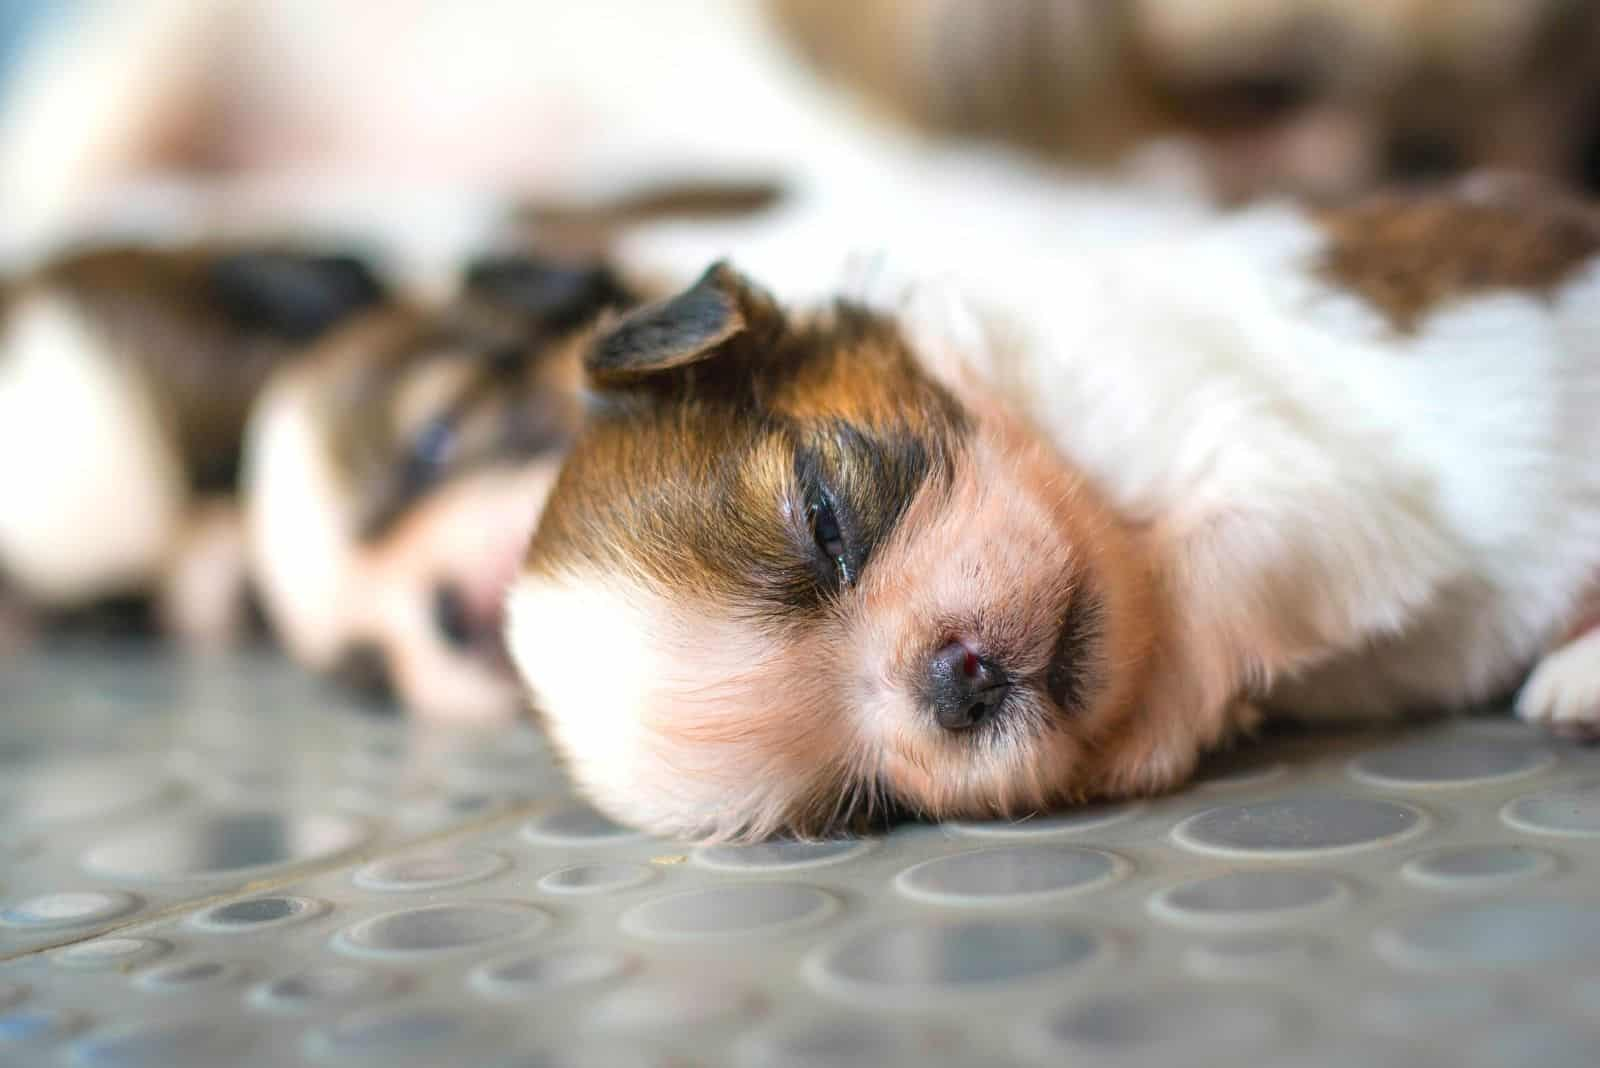 shih tzu puppies lying next to each other